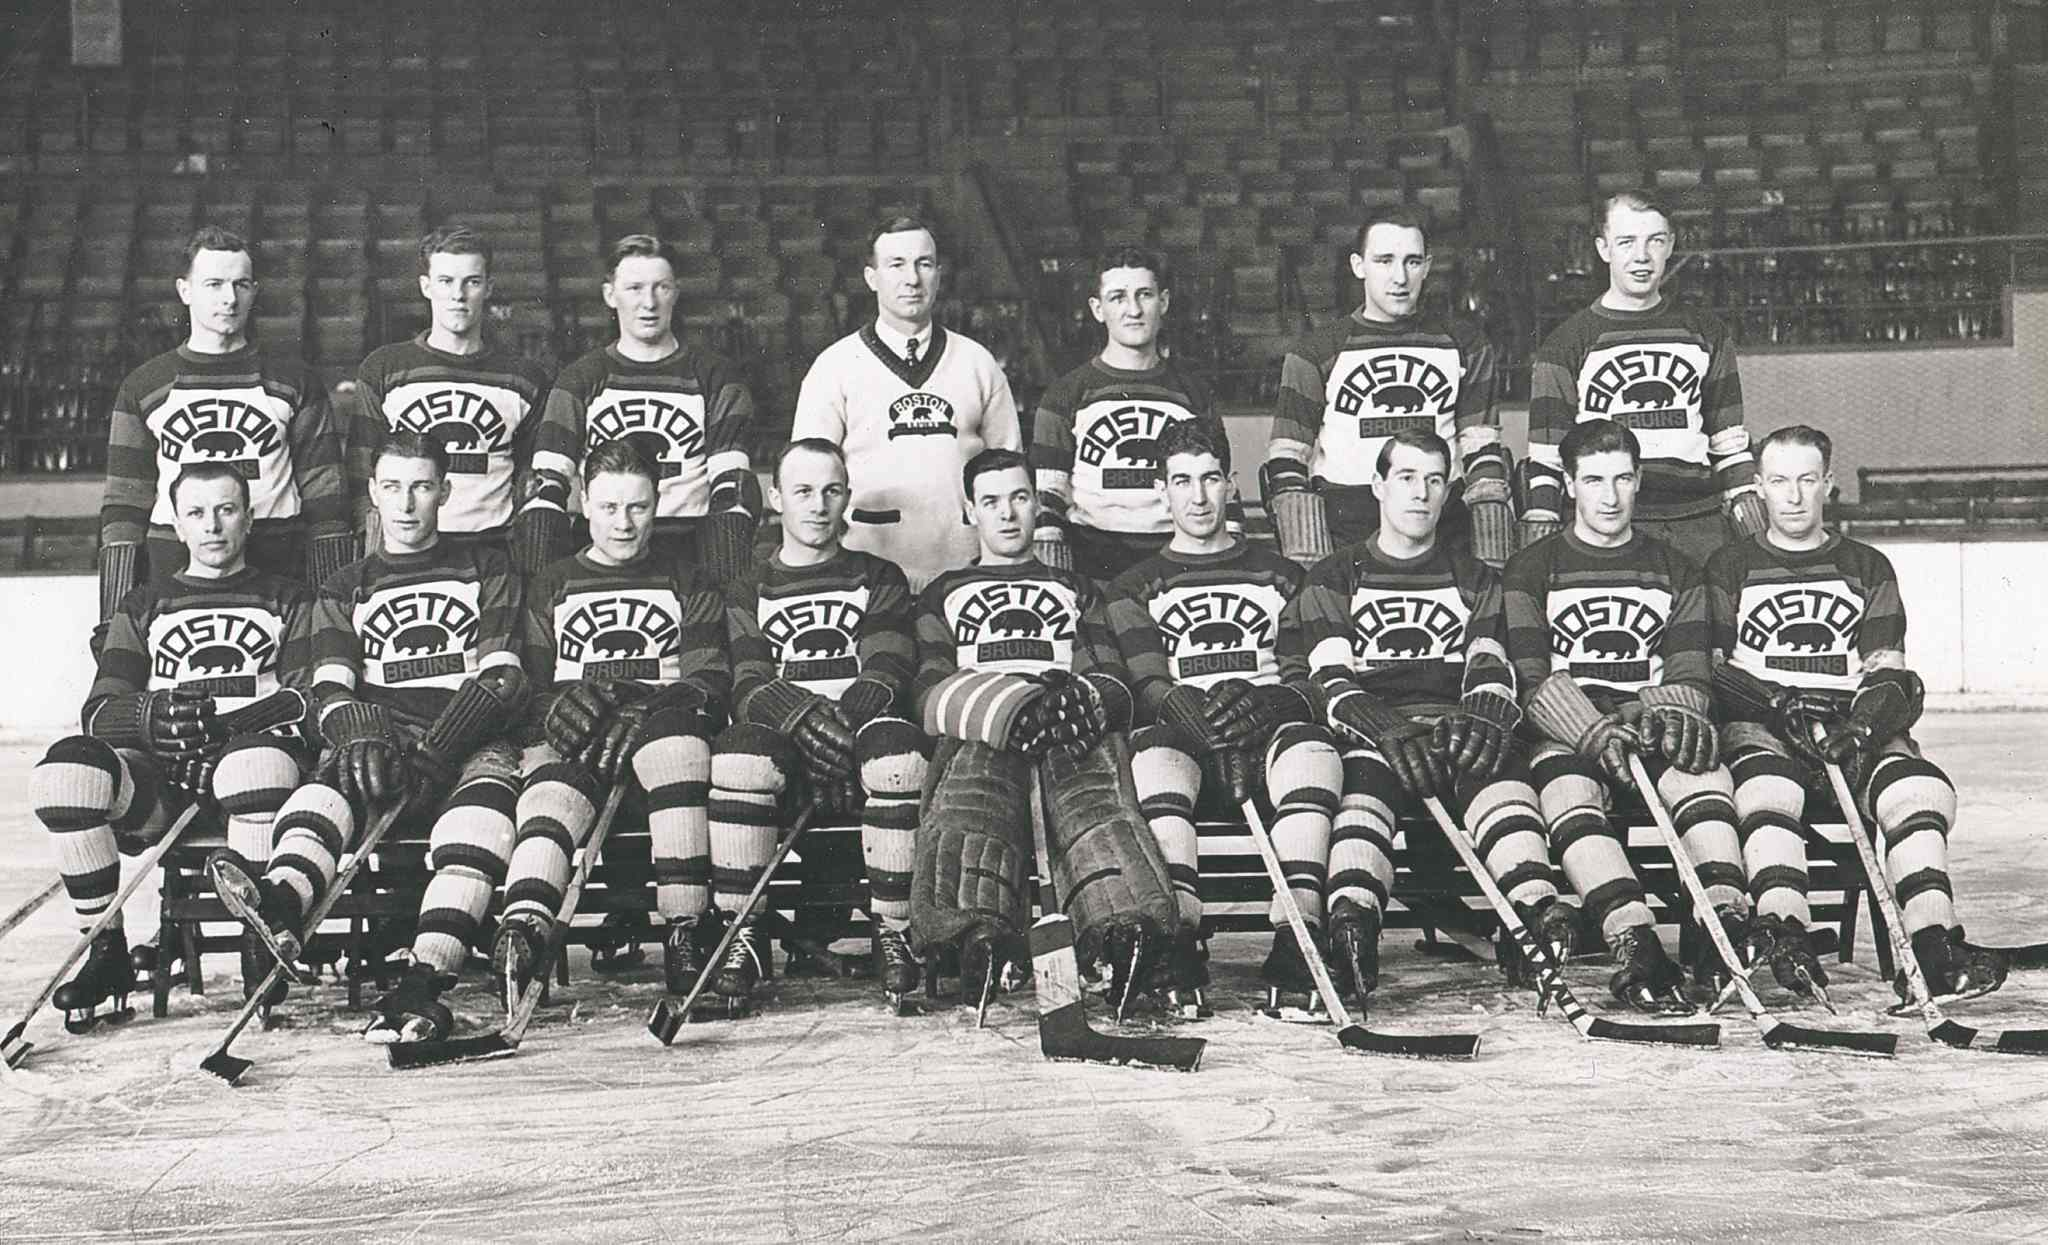 Art Ross (back row, centre) was the first coach and general manager of the Boston Bruins when they entered the National Hockey League in the 1924-1925 season.